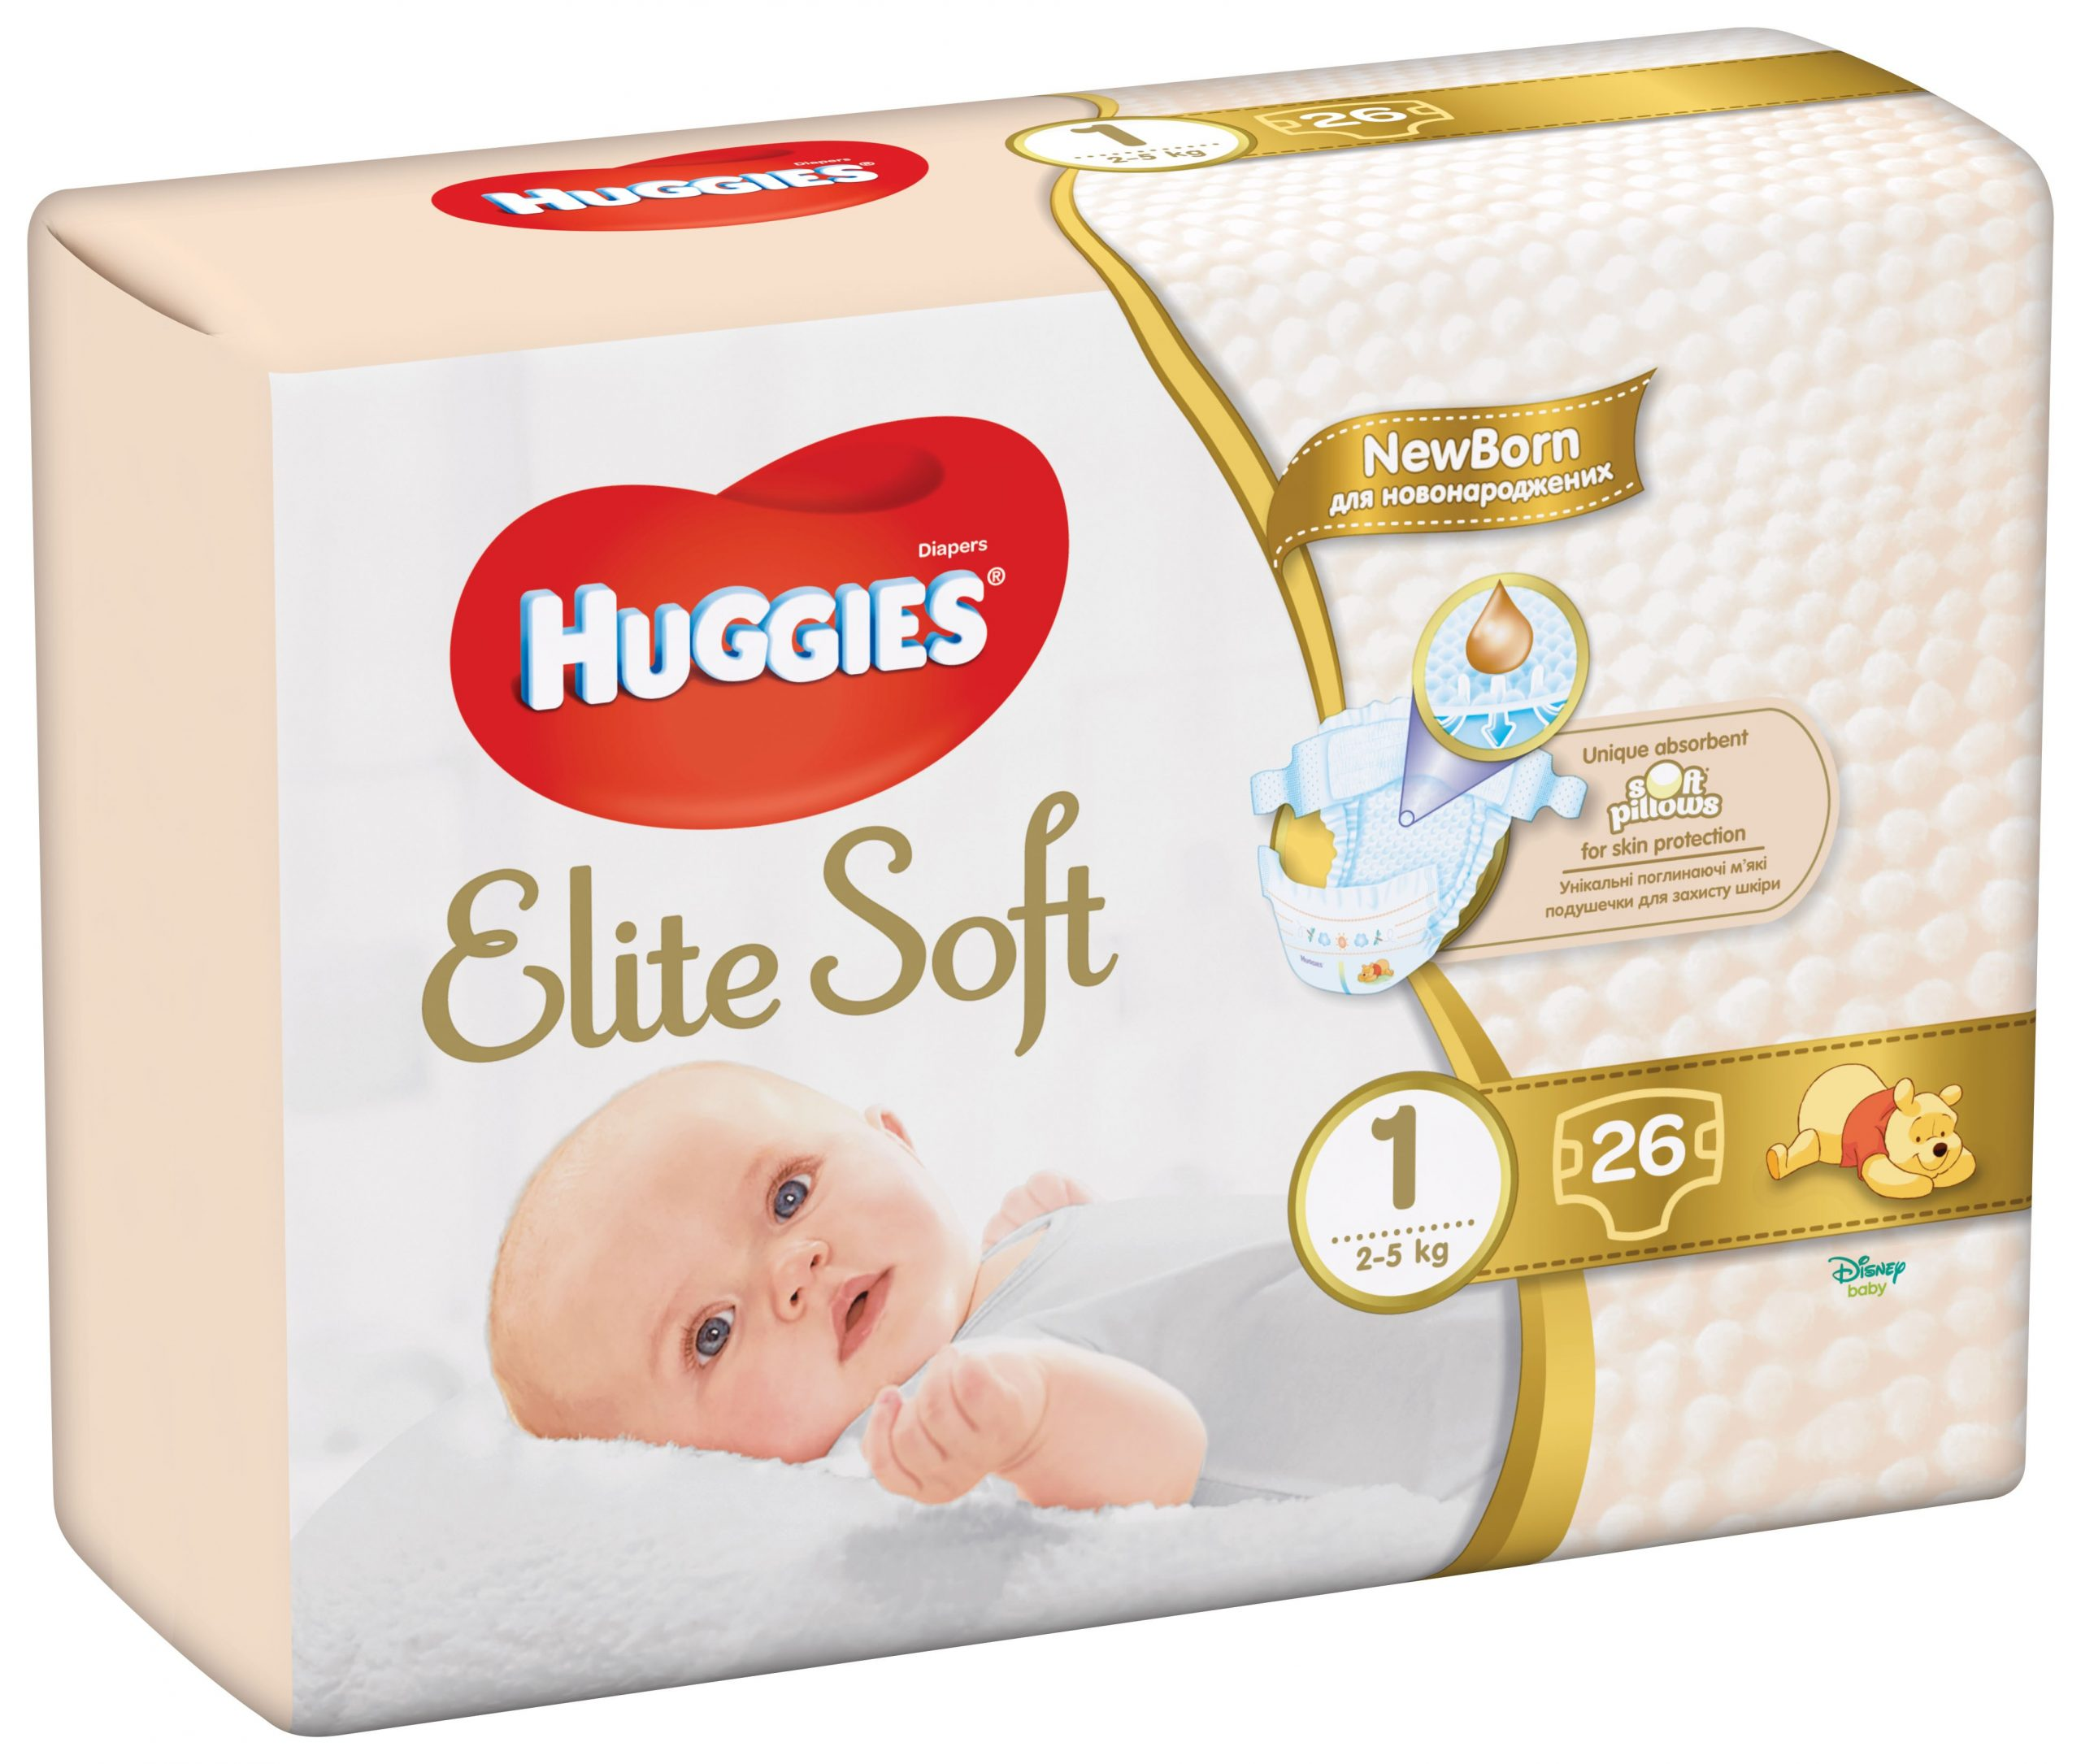 HUGGIES ELITE SOFT 1 (26) 2-5kg